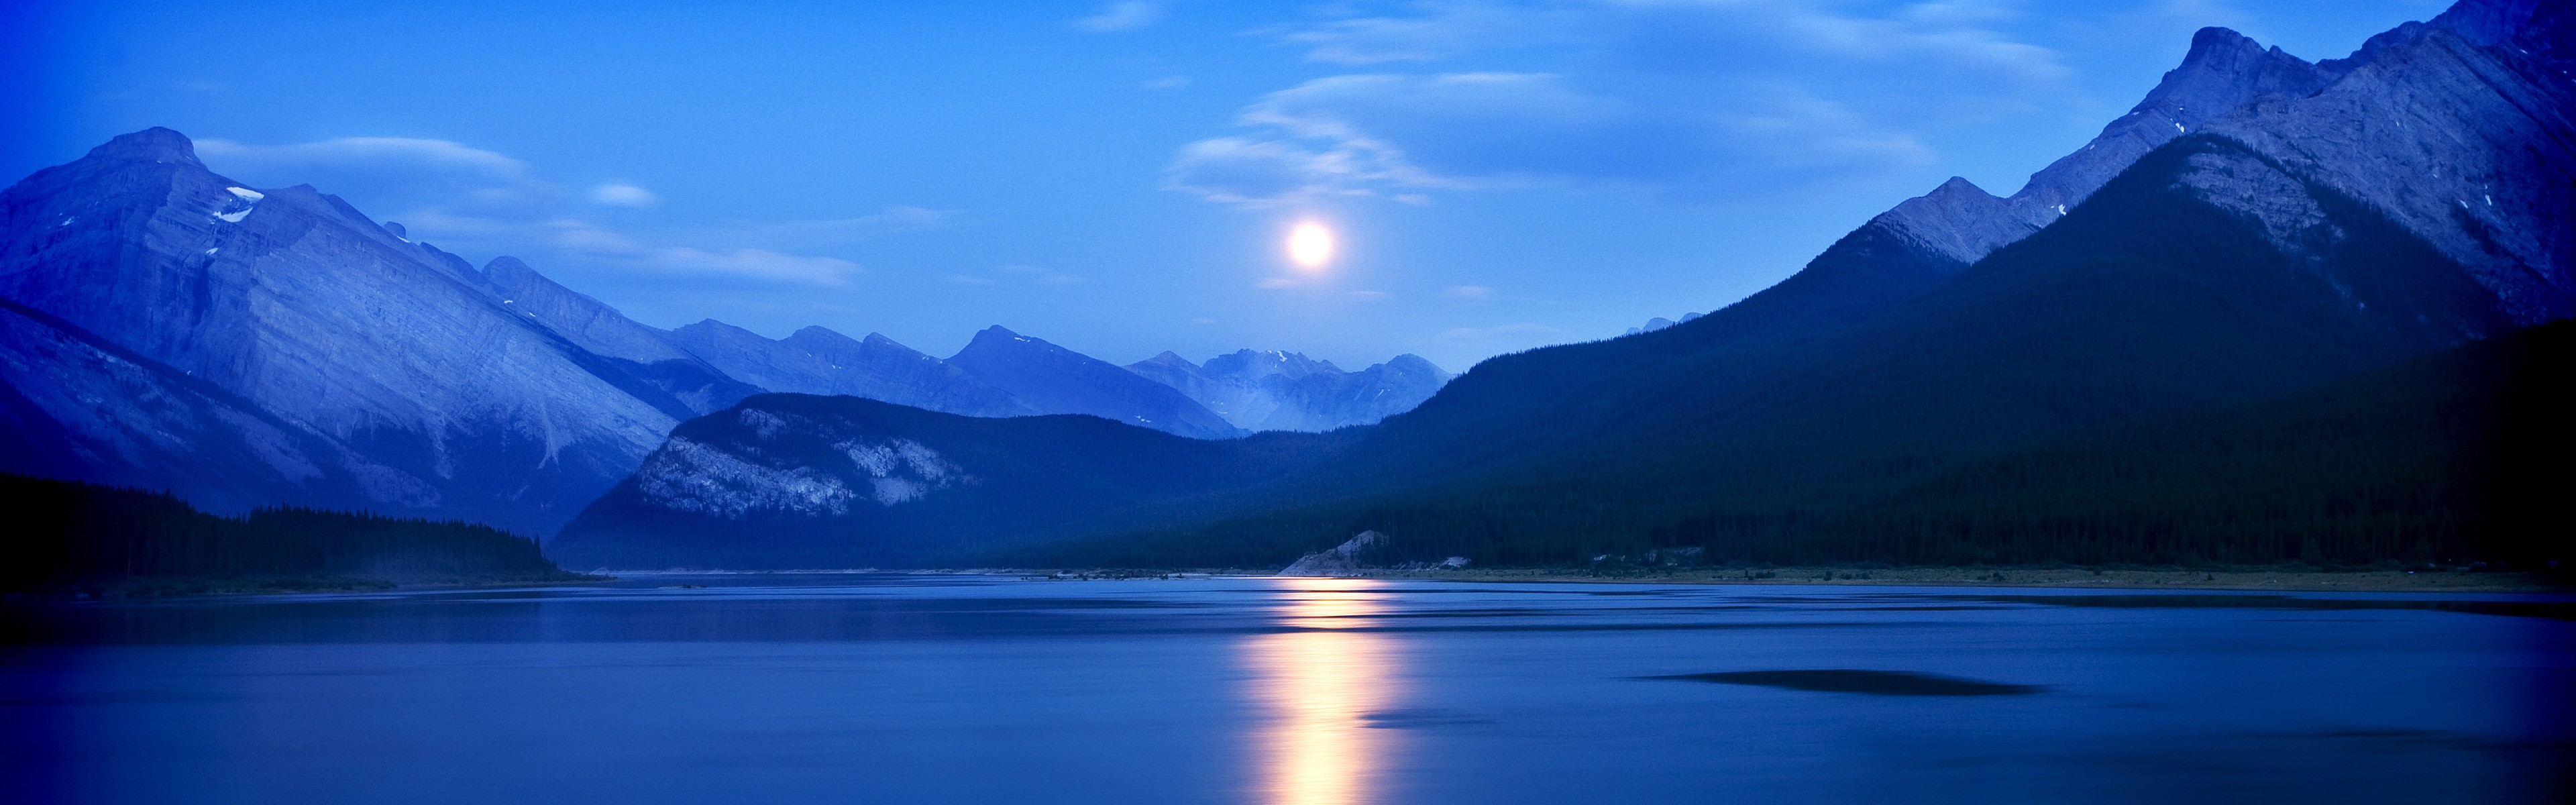 Iphone 5 Panorama Wallpaper Moonrise Spray Lakes Reservoir Alberta Canada Wallpapers